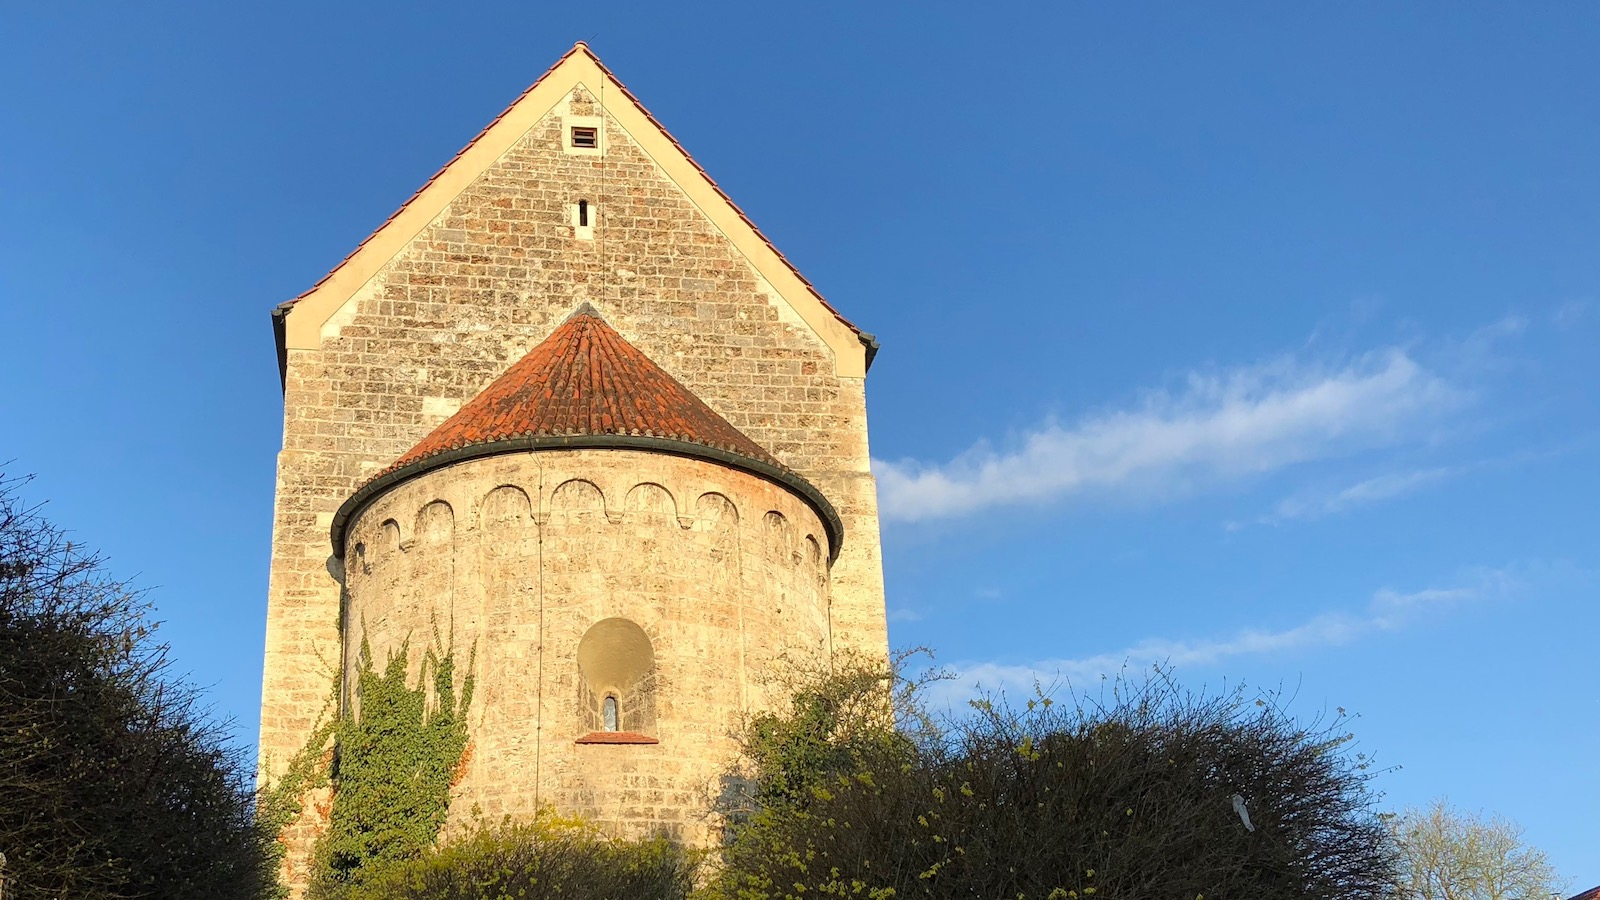 St. Jakob in Schondorf am Ammersee